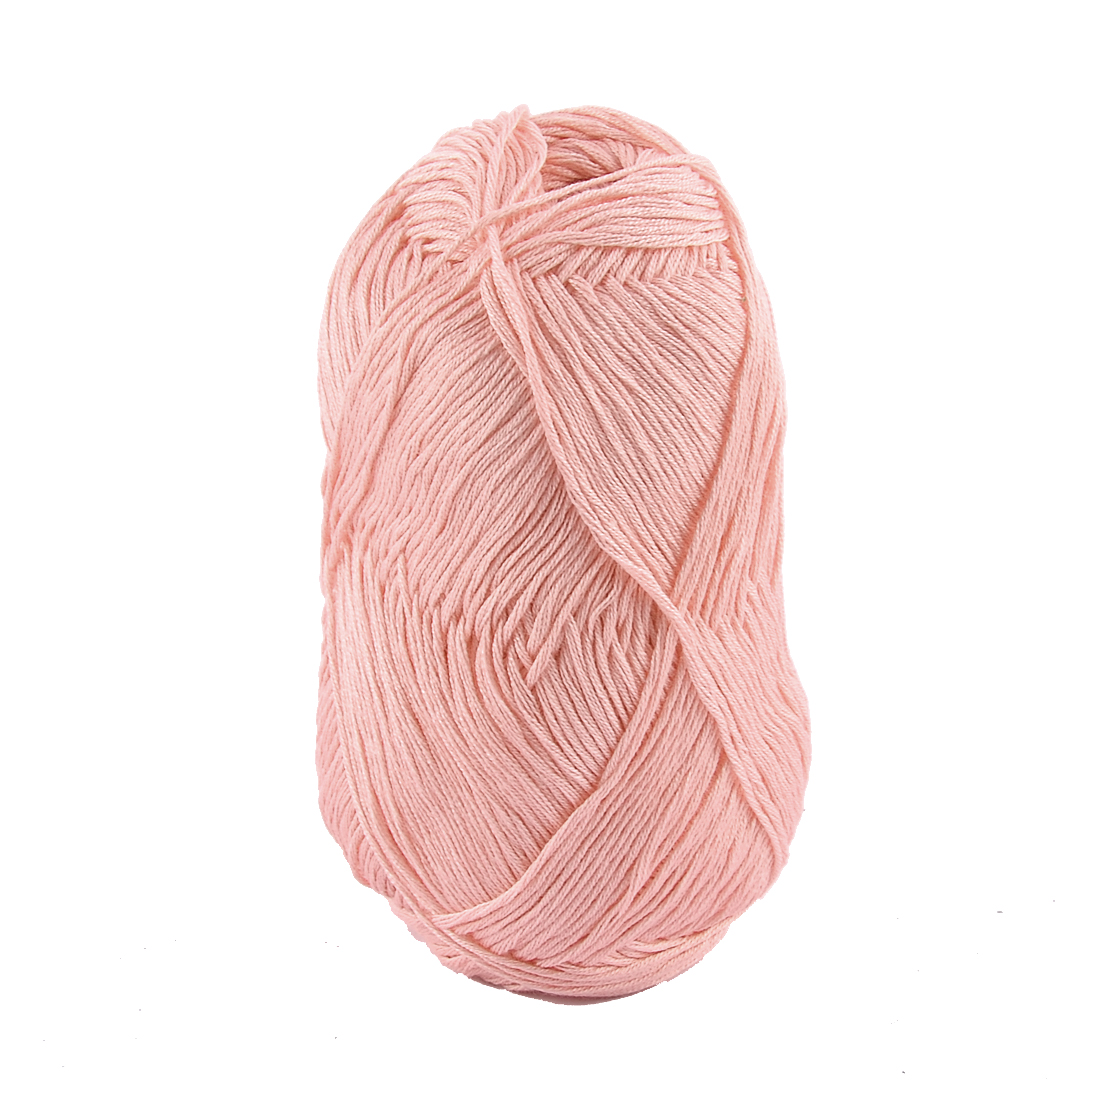 Cotton Hand Knitting Clothes Hat Sweater Crocheting Crochet Thread 50 Gram Pink